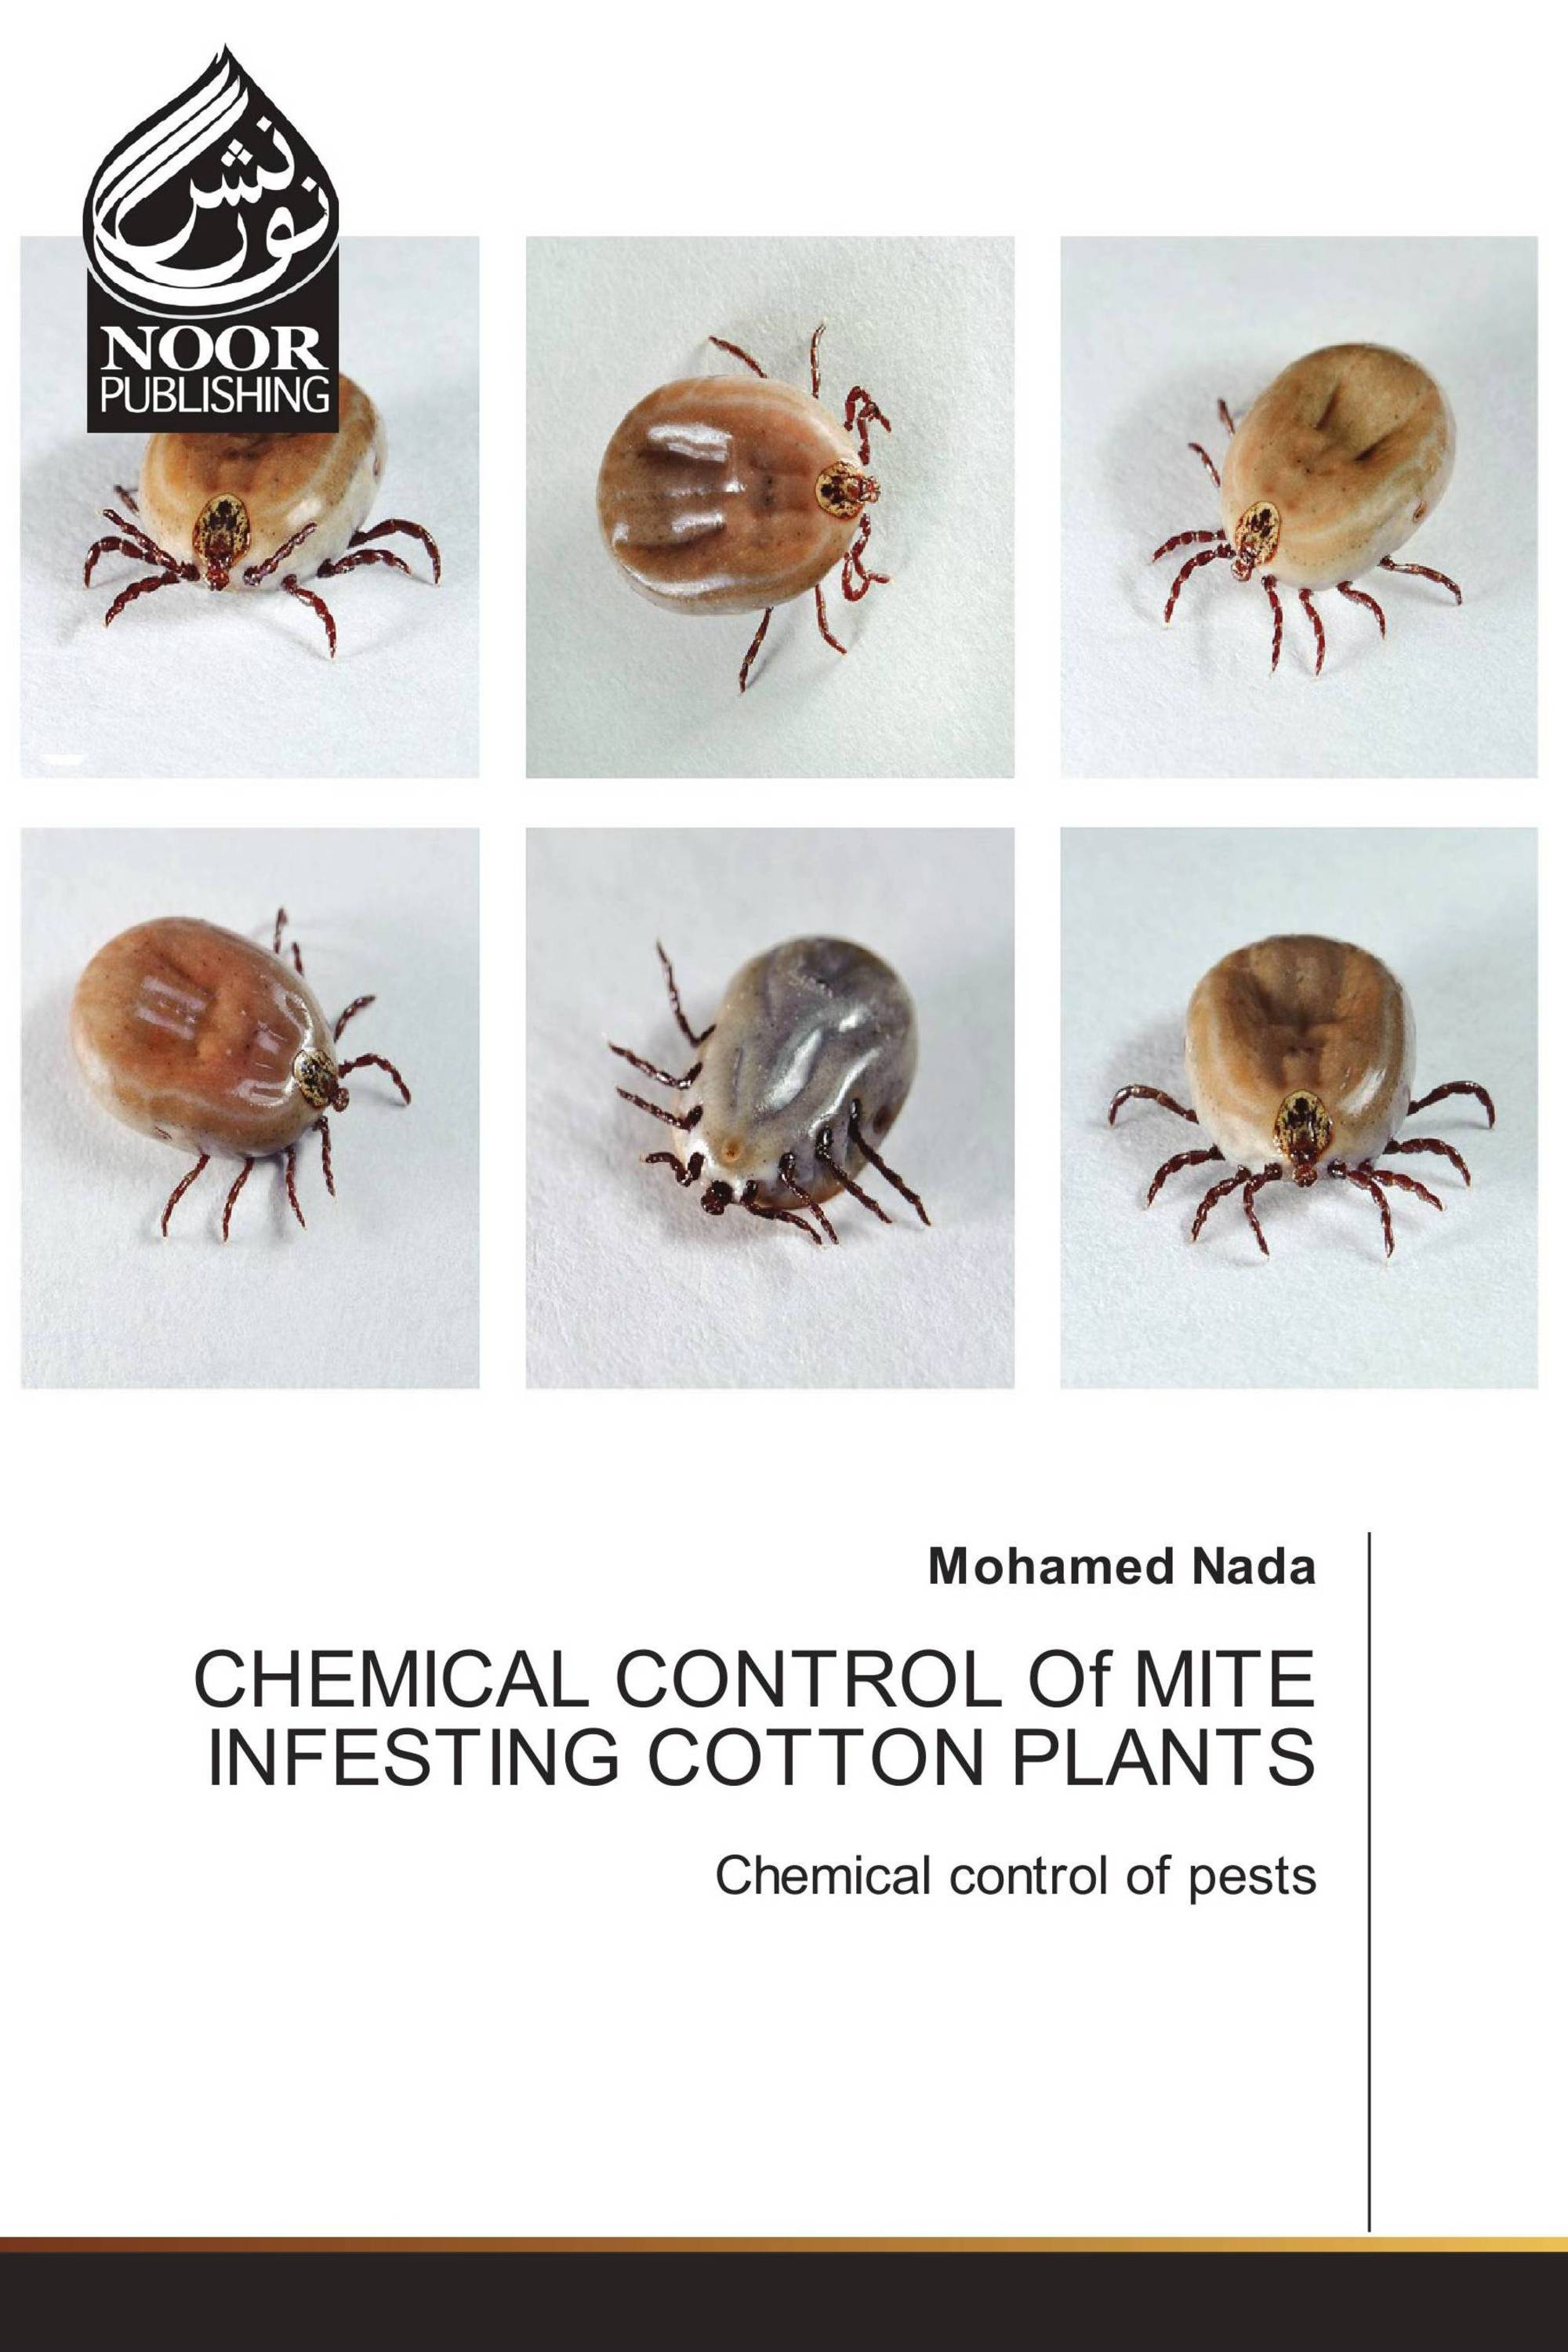 CHEMICAL CONTROL Of MITE INFESTING COTTON PLANTS